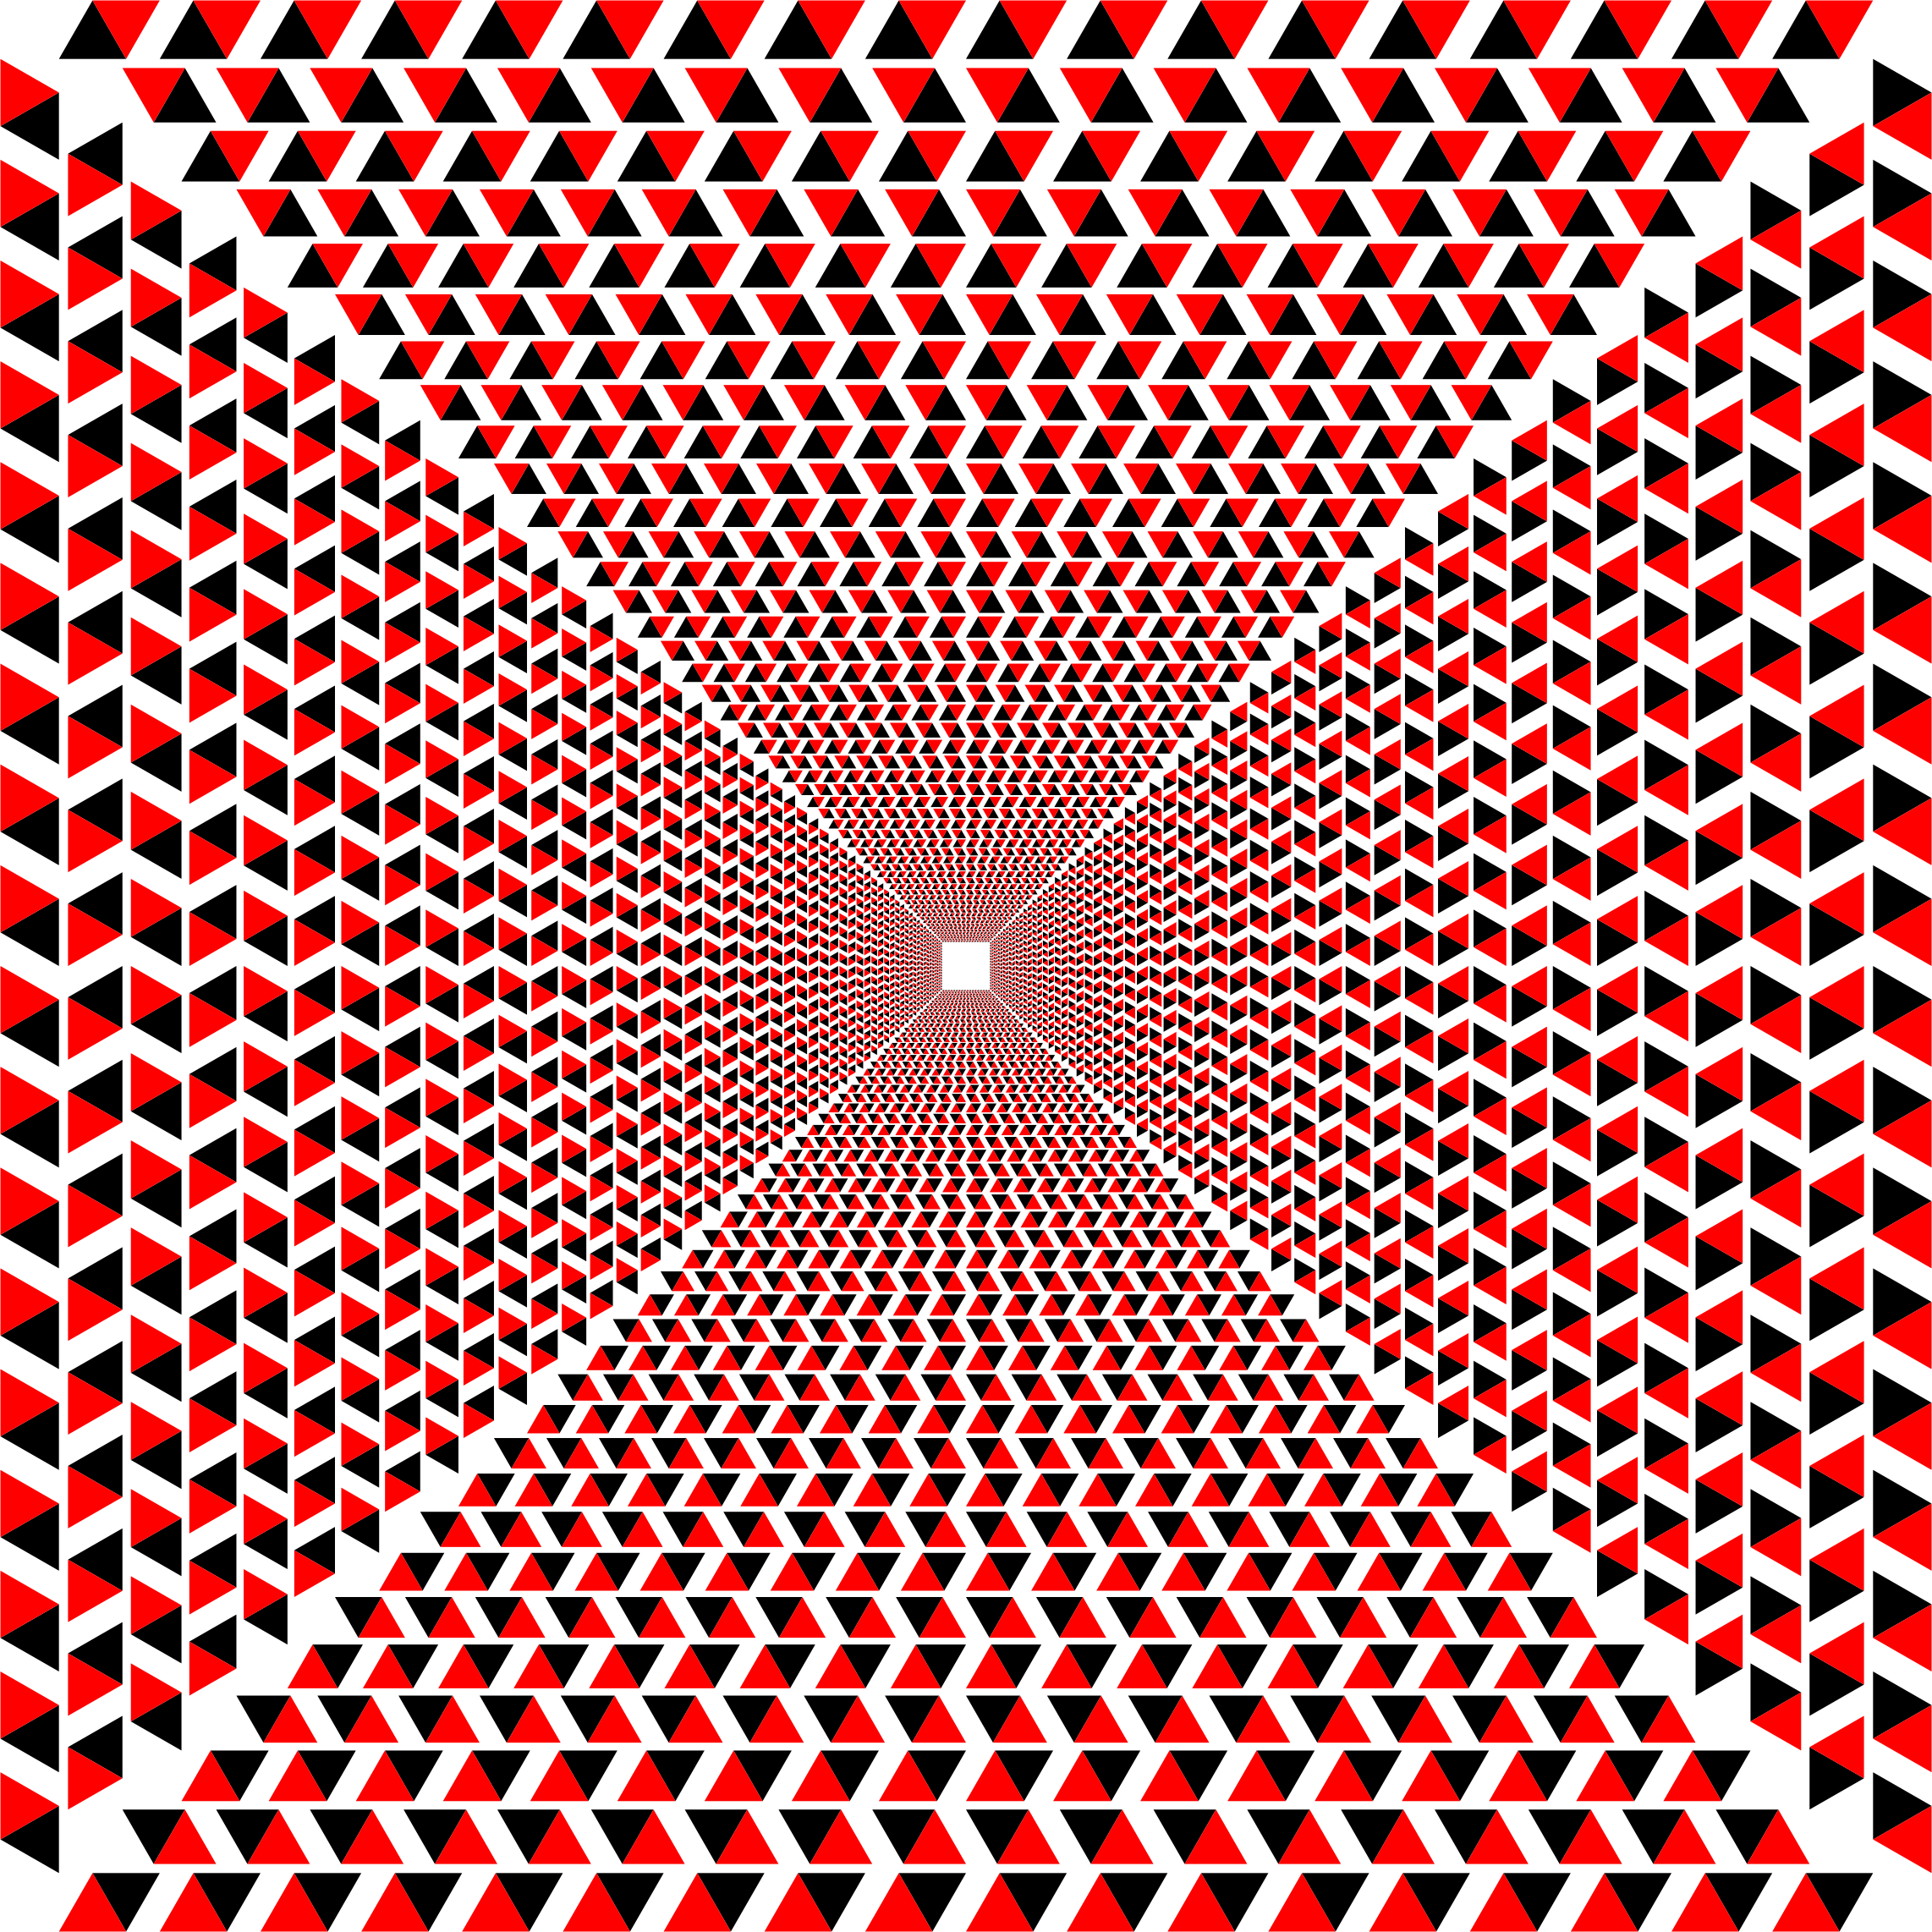 Hypnotic Triangular Vortex 2 by GDJ